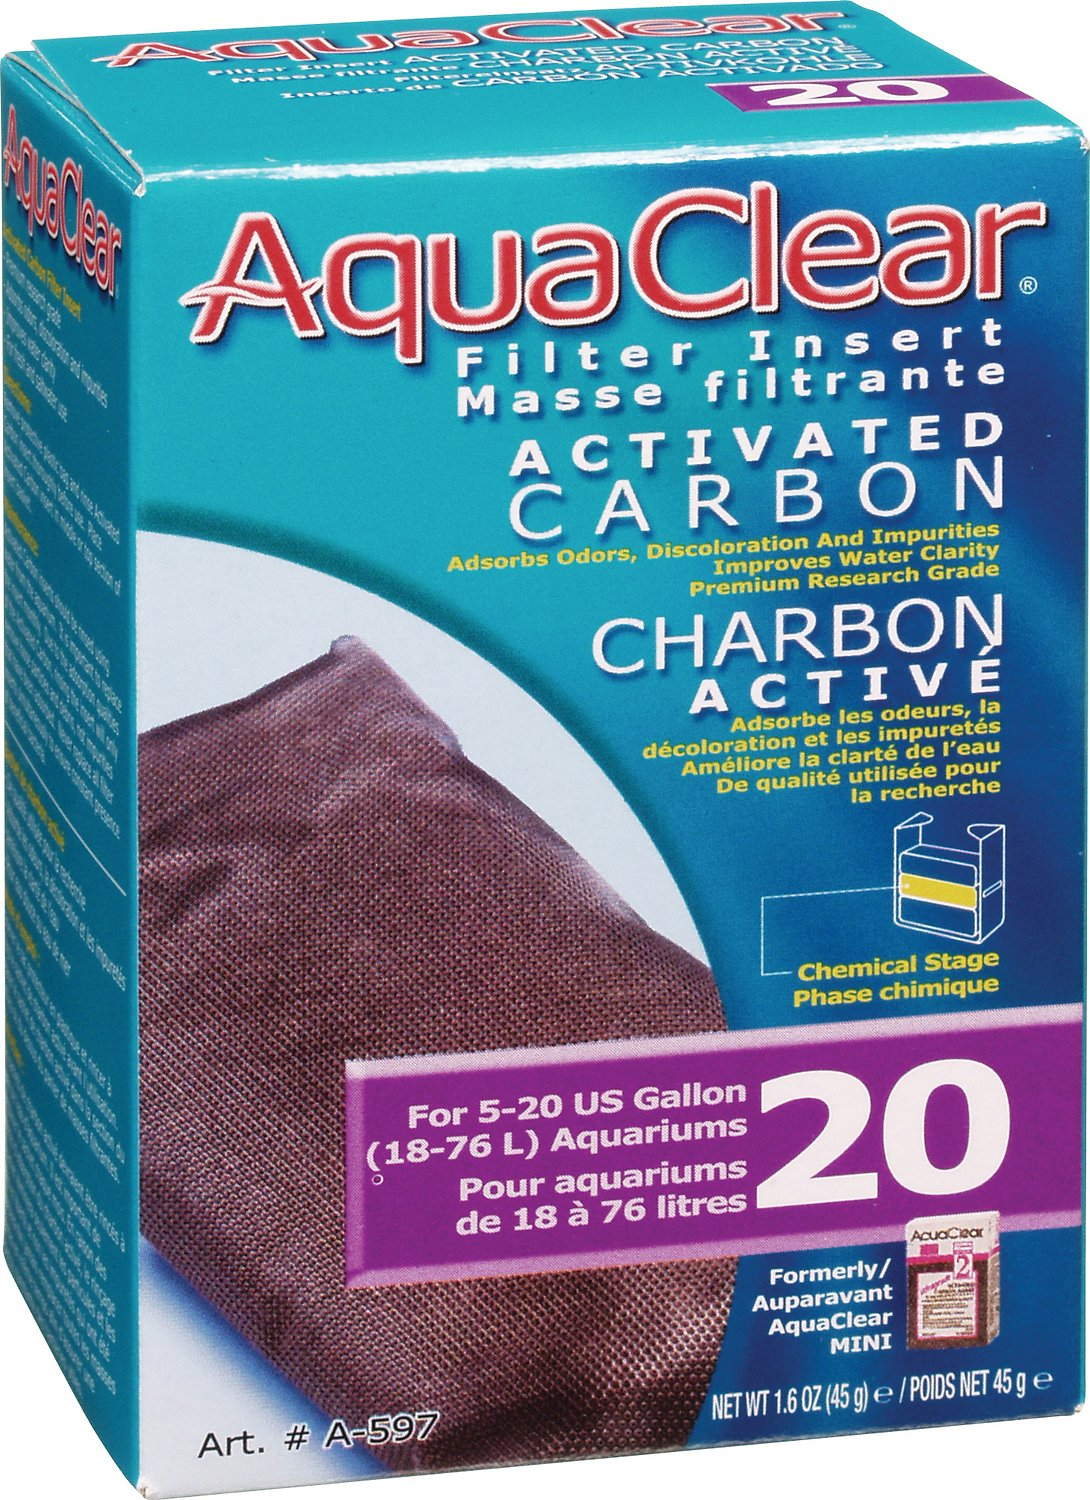 aquaclear mini activated carbon filter insert size 20 chewy com